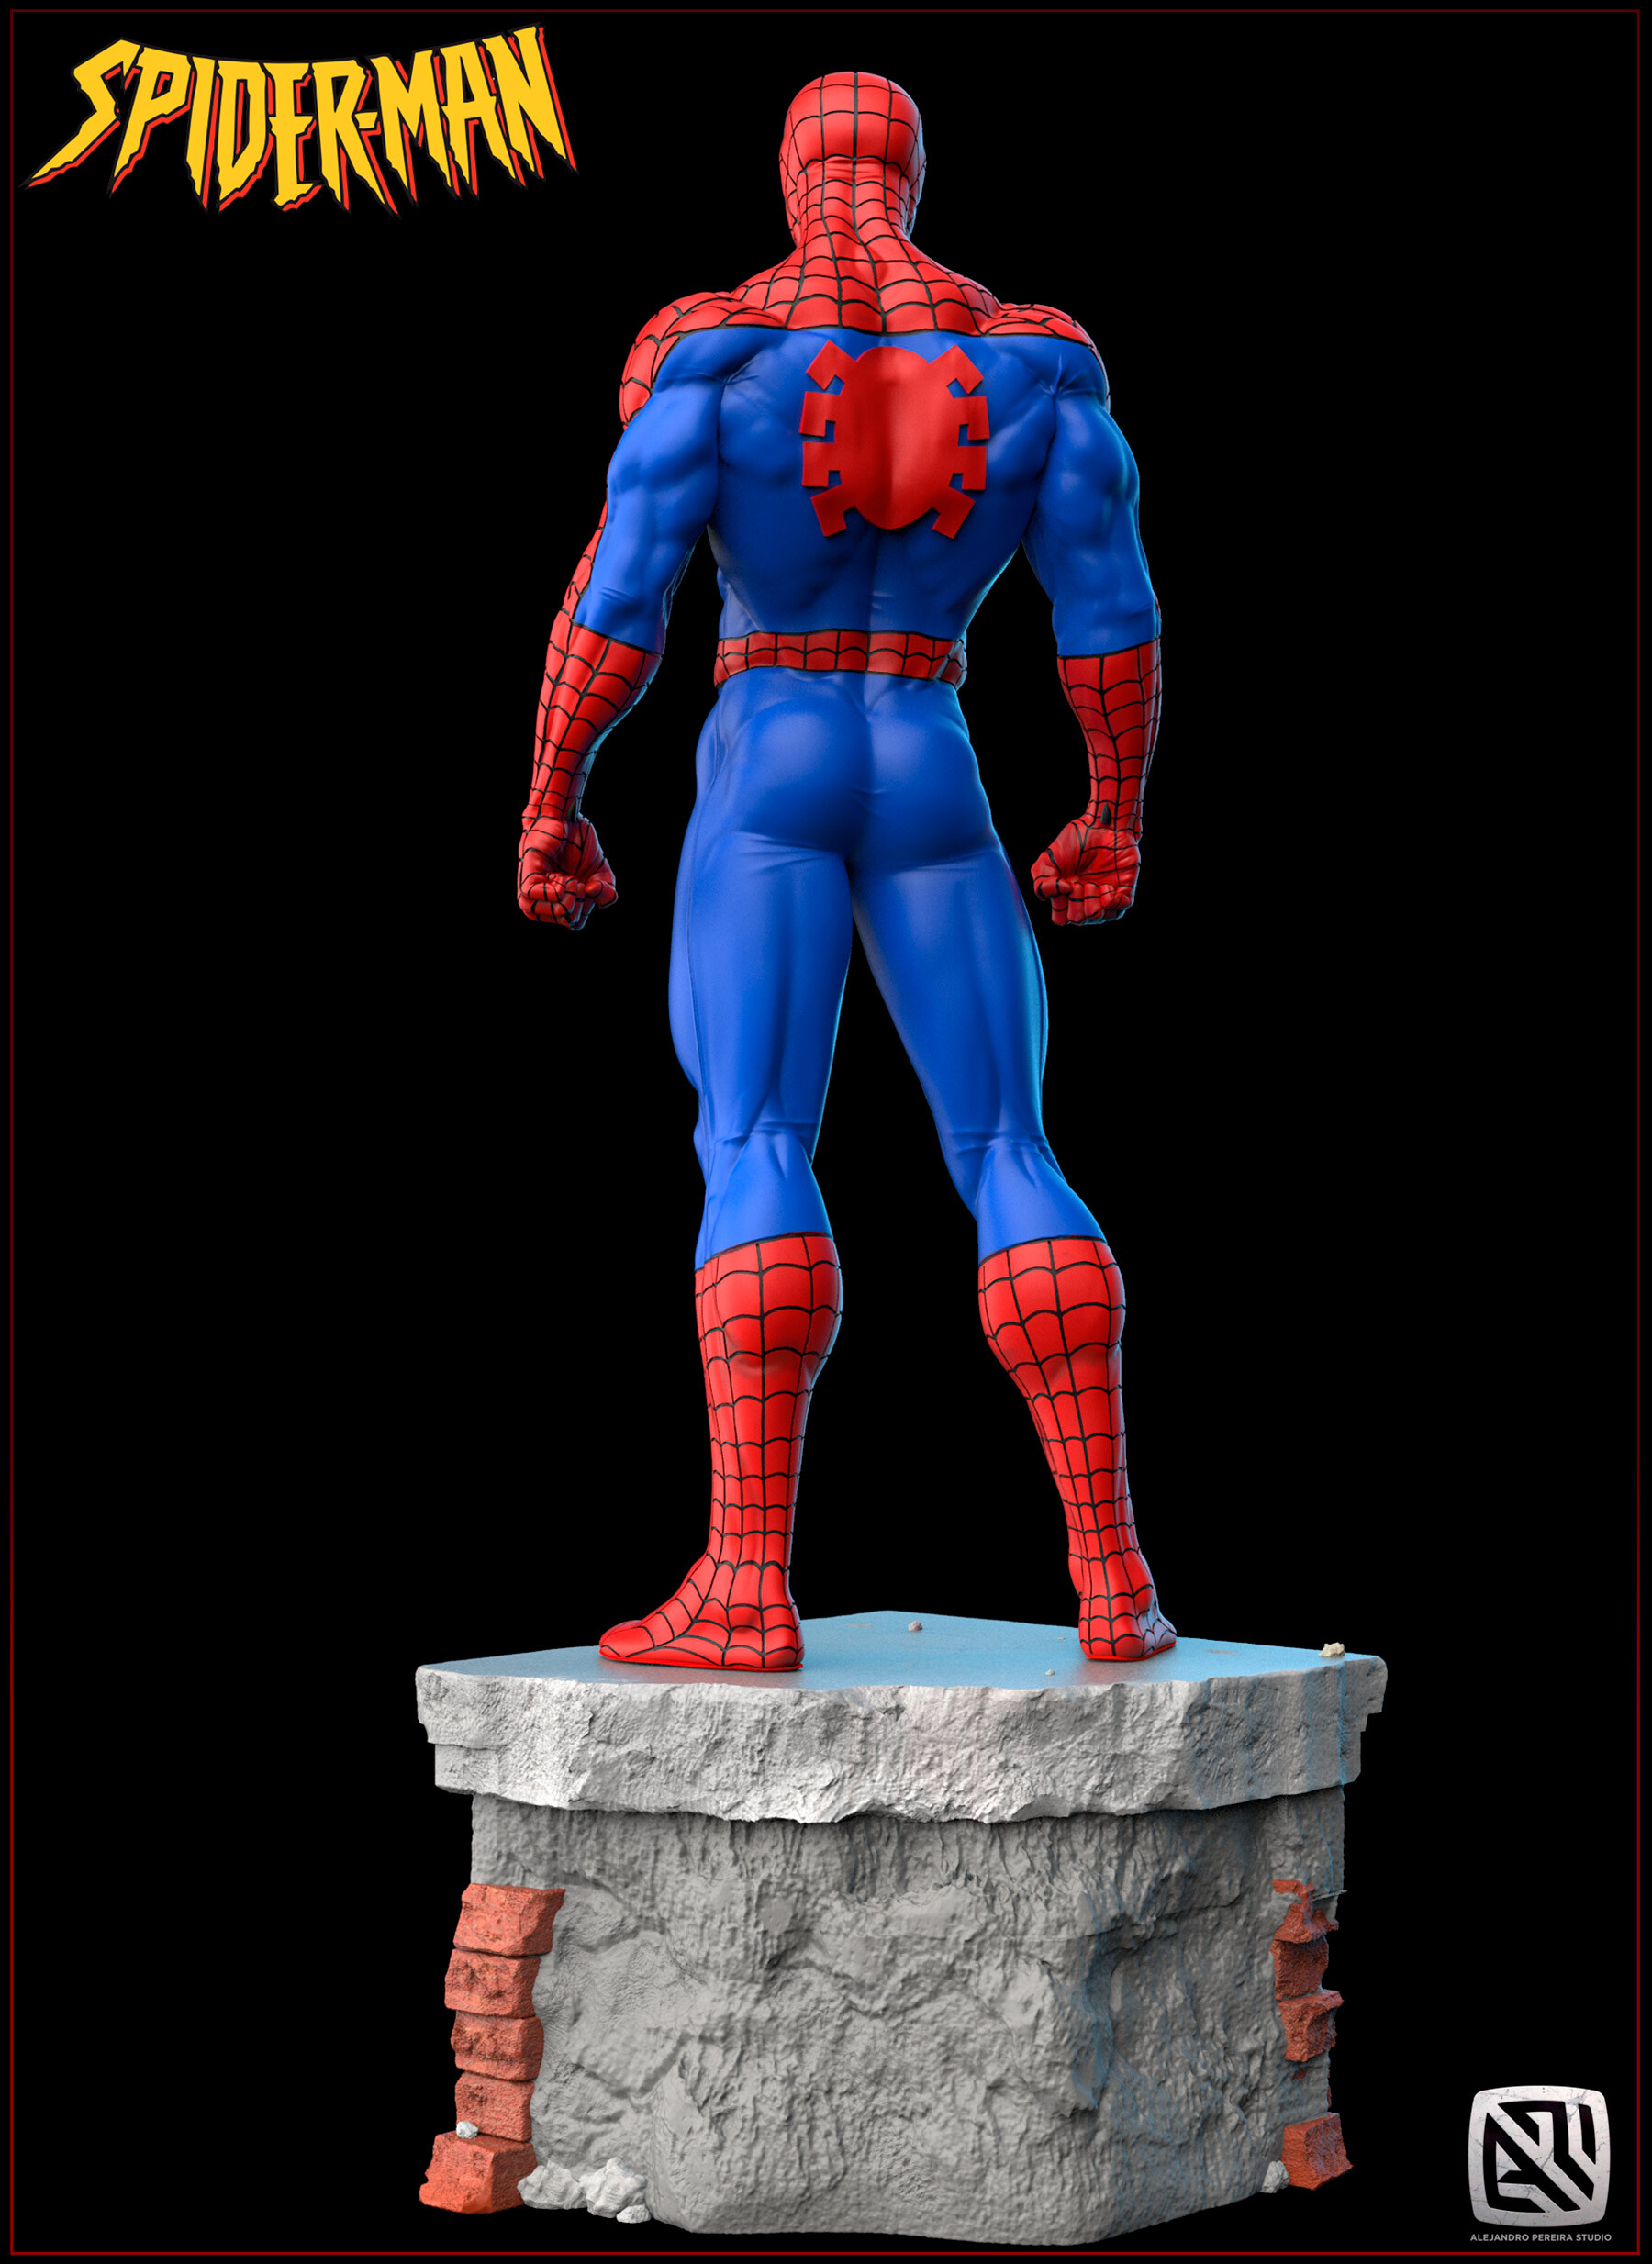 Alejandro pereira spidey render color 06